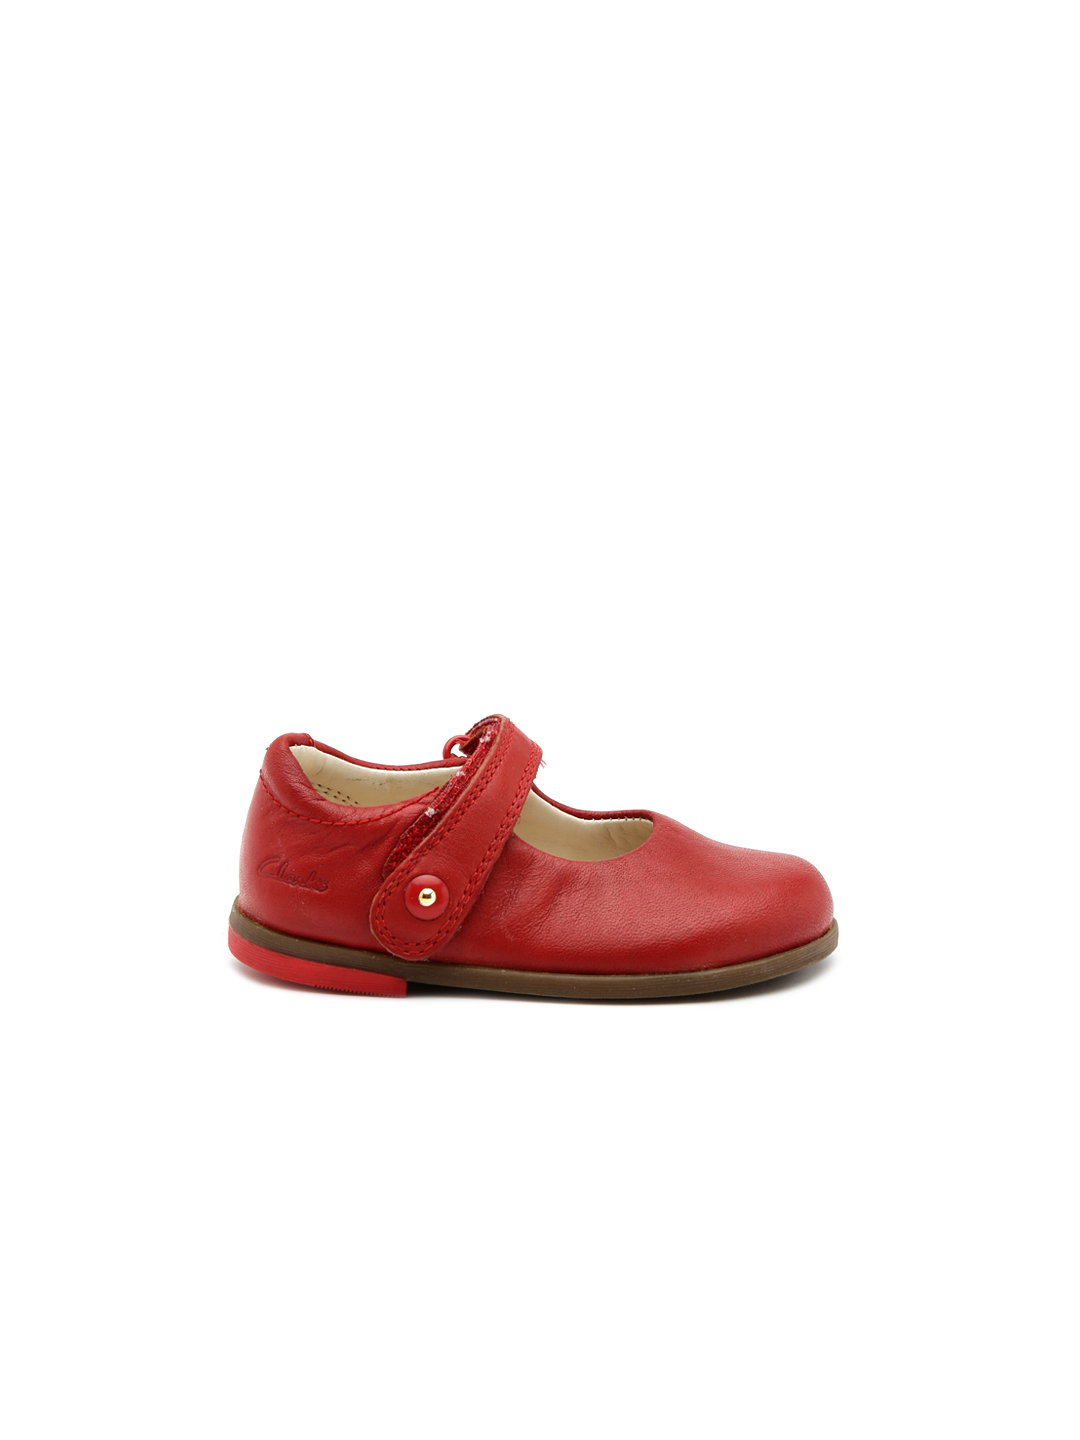 Clarks Girls Red Bonnie Boo Fst Leather Mary Janes